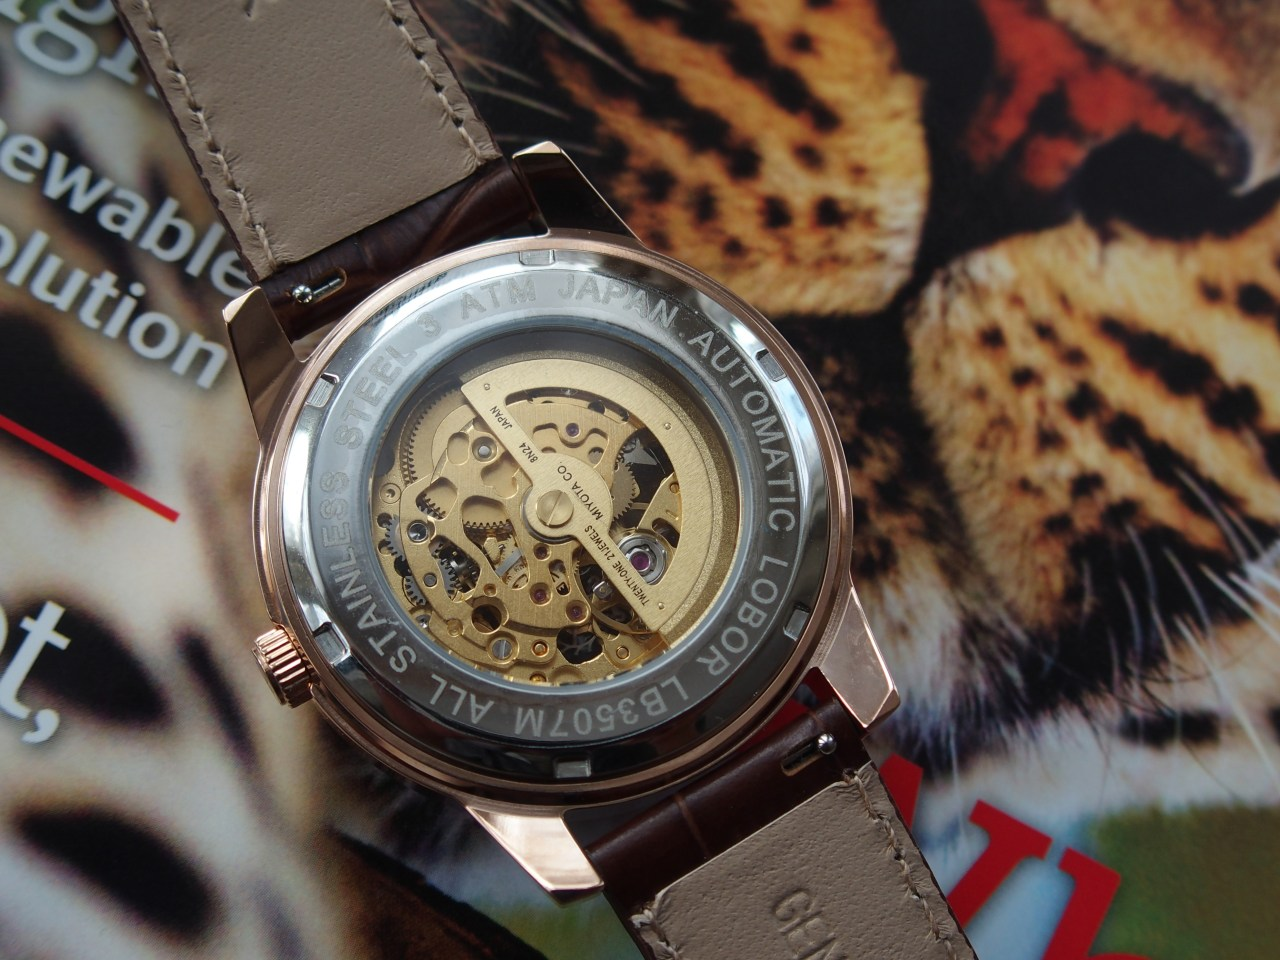 Lobor Automatic Skeleton Watch Charlemagne Dynasty